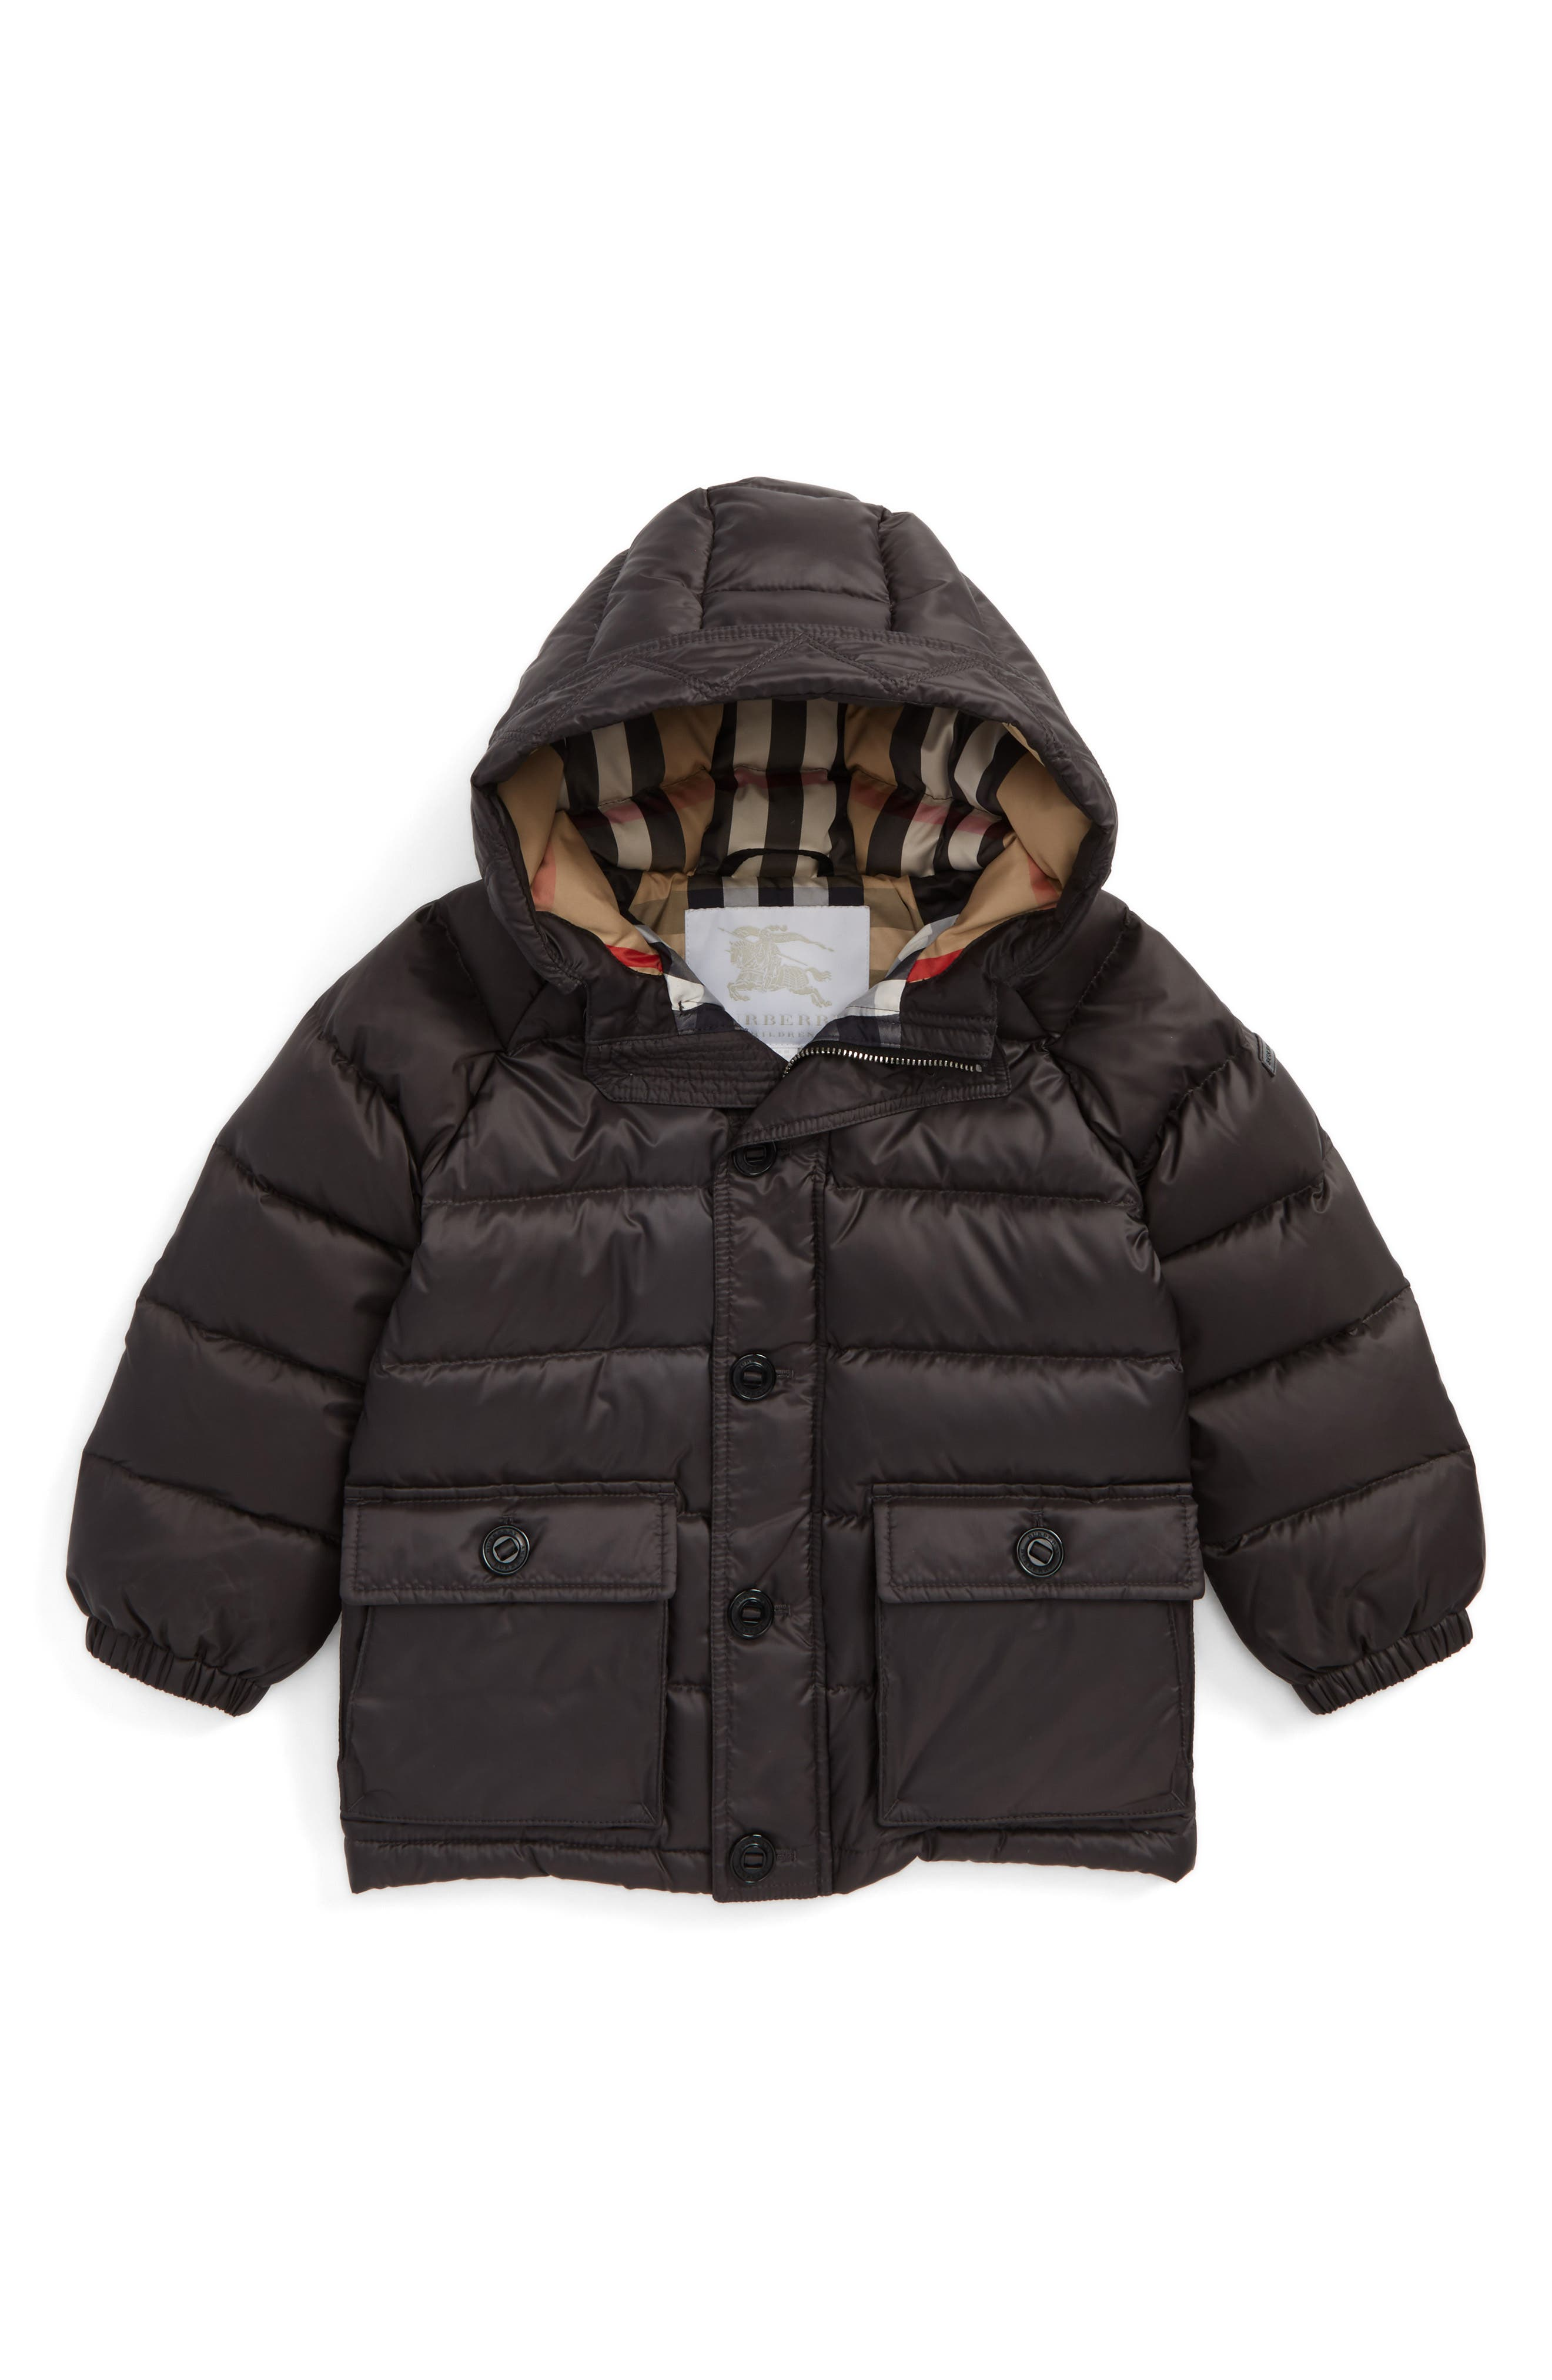 Lachlan Hooded Down Jacket,                             Main thumbnail 1, color,                             Charcoal